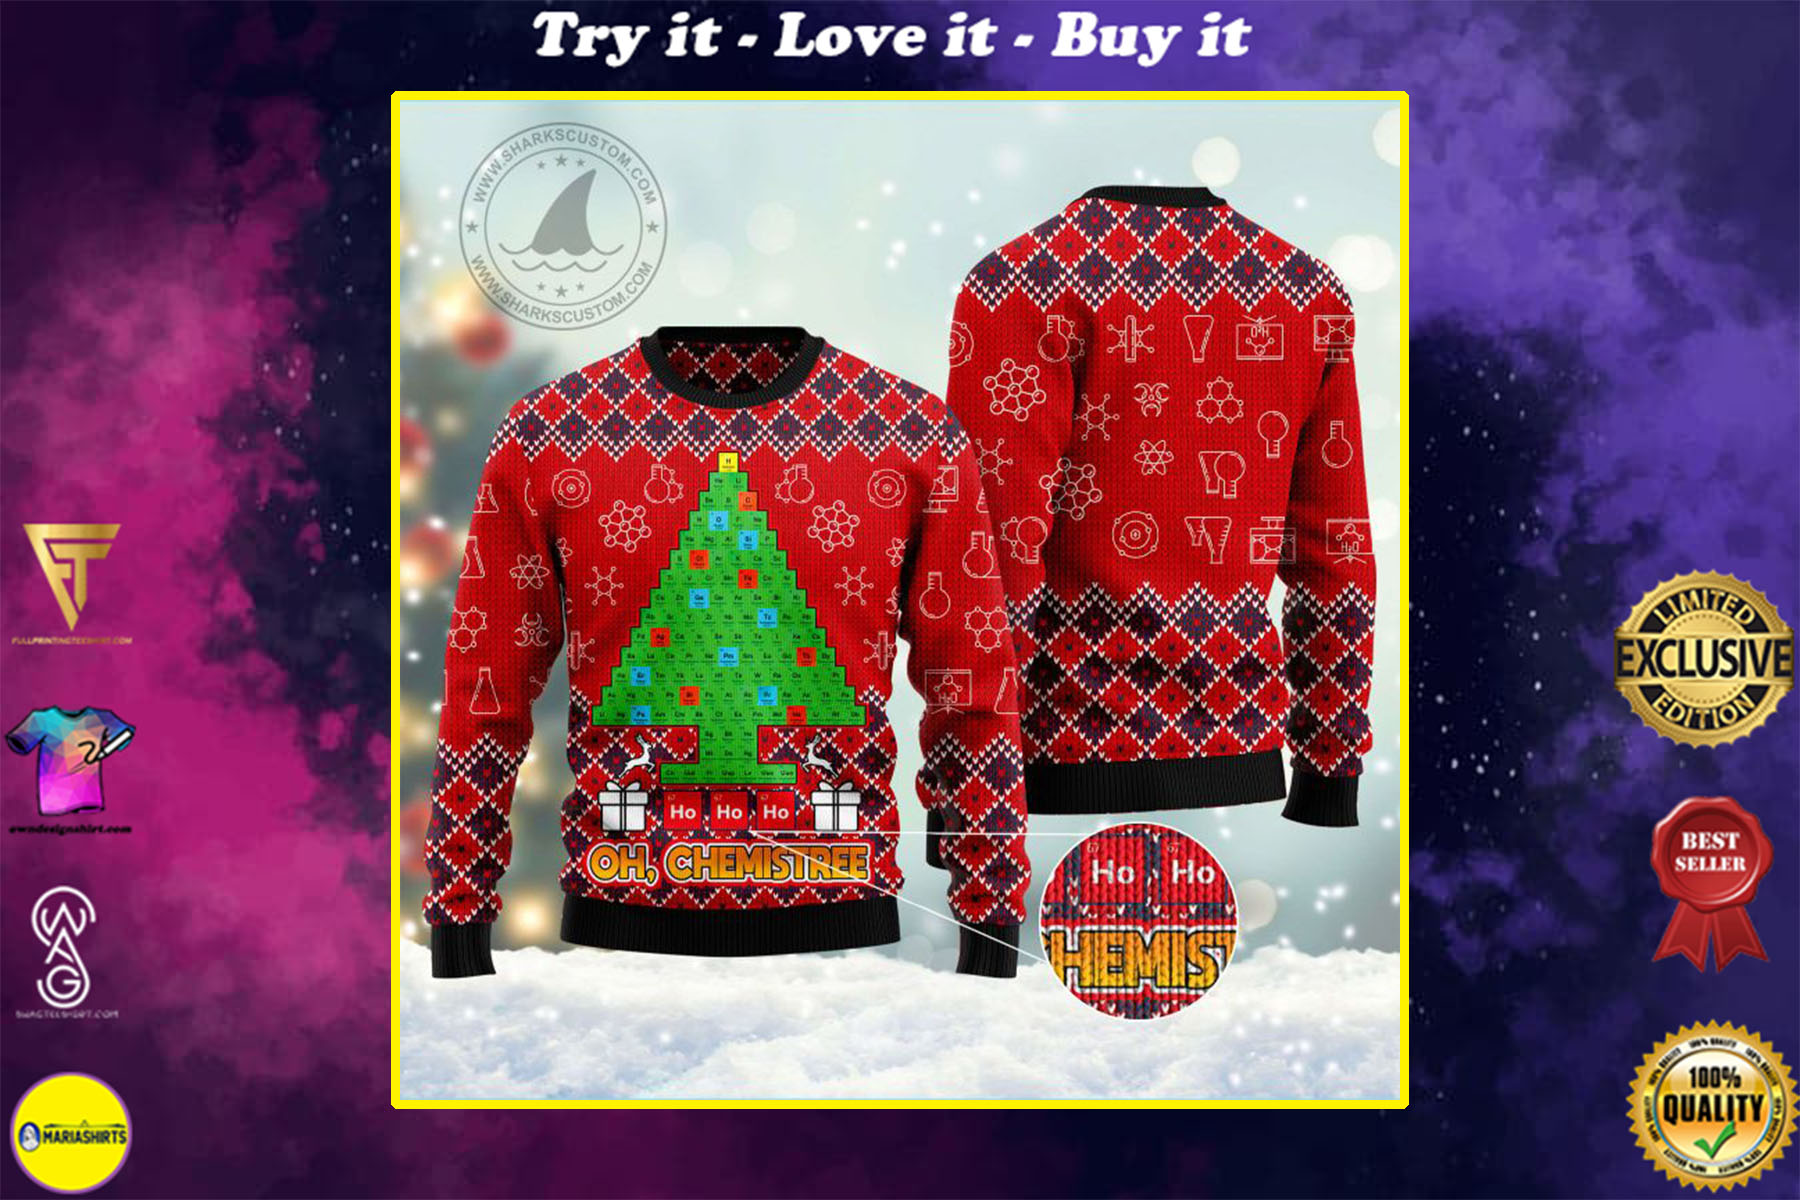 [special edition] ho ho ho oh chemistree all over printed ugly christmas sweater - maria